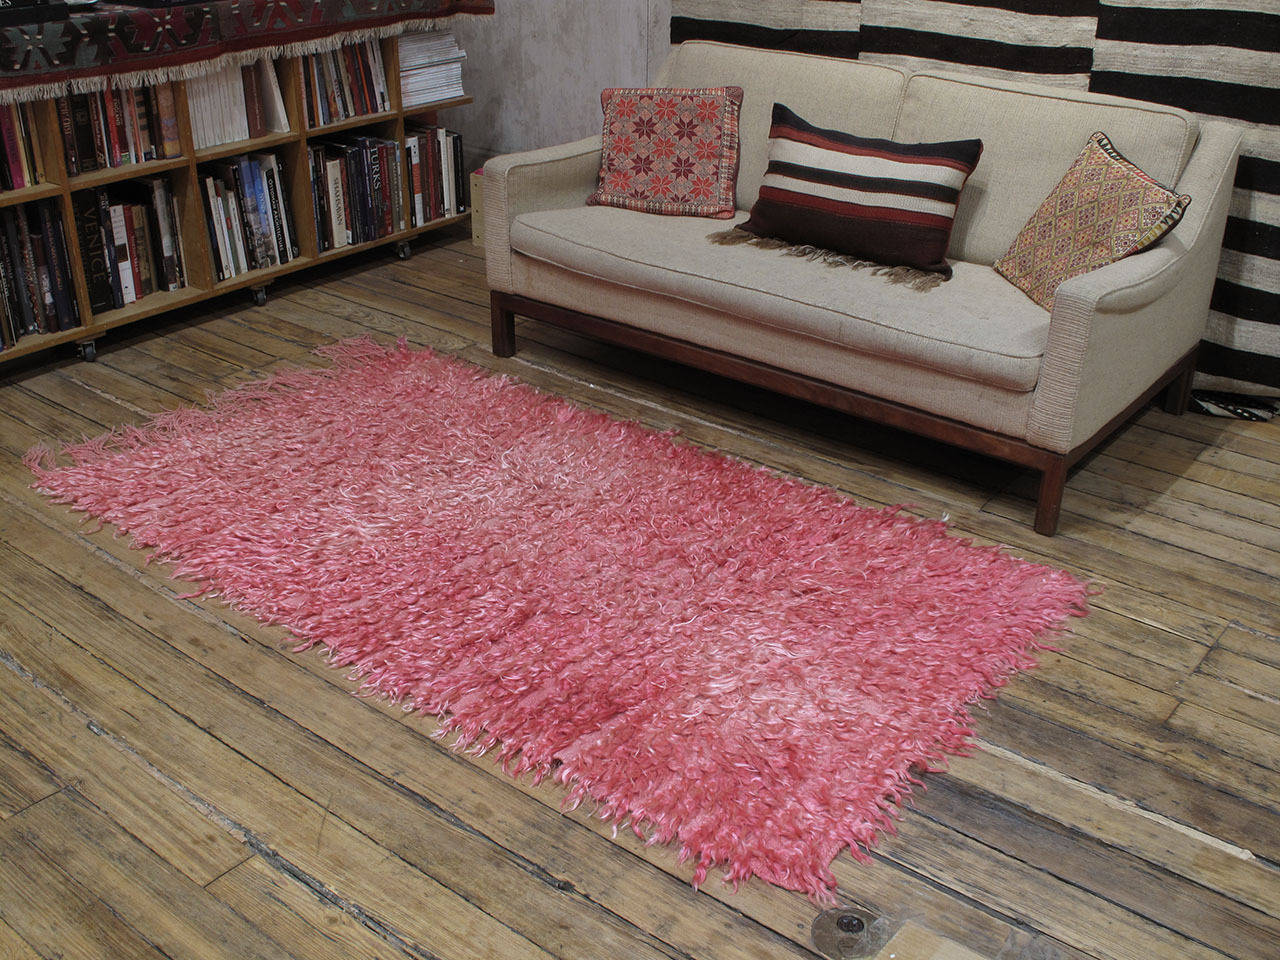 A simple old tribal rug from West-Central Turkey, woven with coarsely knotted tufts of angora goat hair (mohair), used to provide warmth and comfort. The color has mellowed with age and it has been hard to capture with our camera, but it can best be